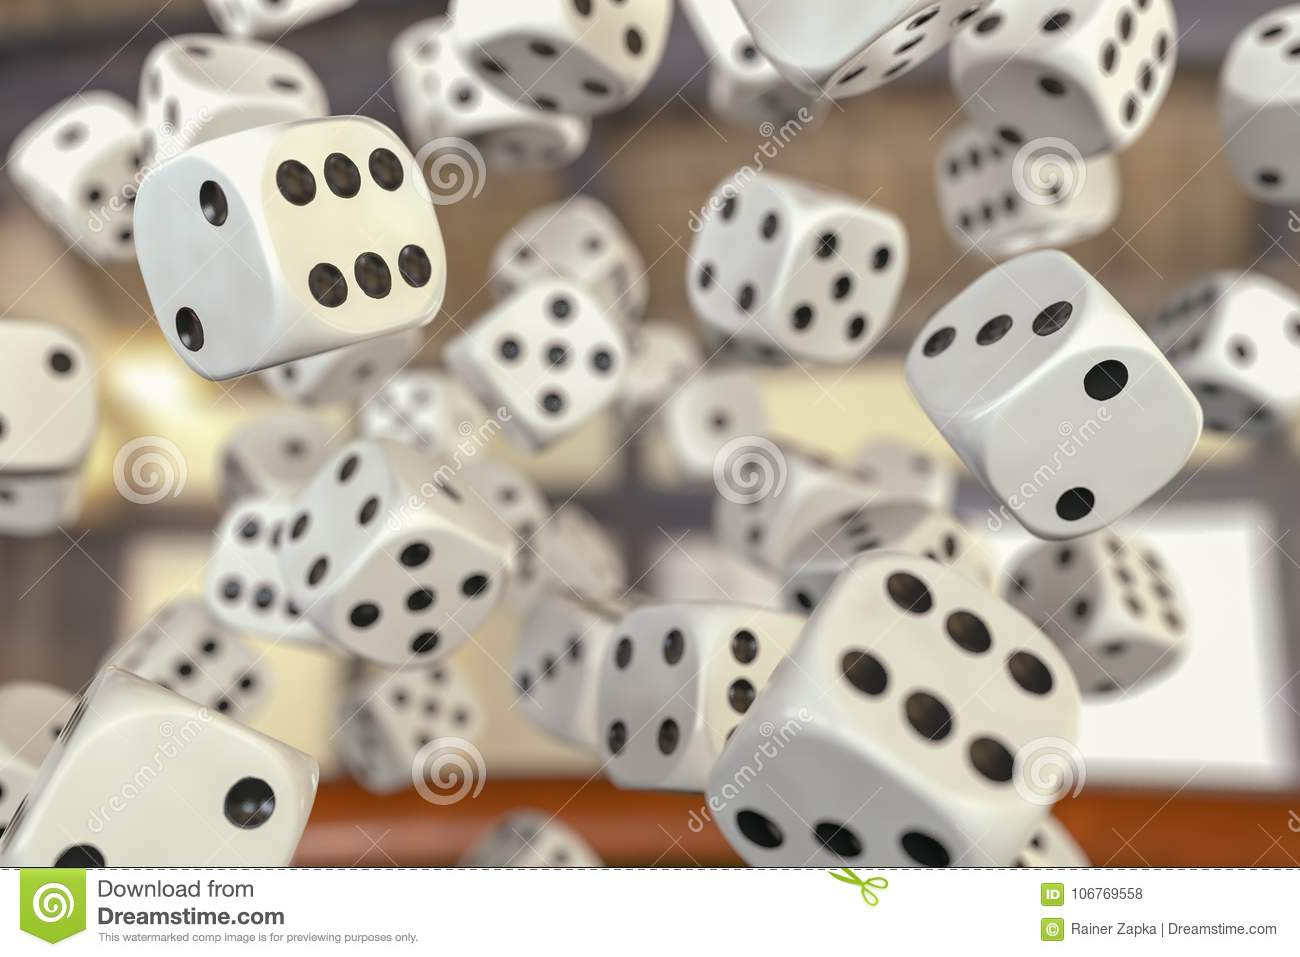 A gamble with many dice